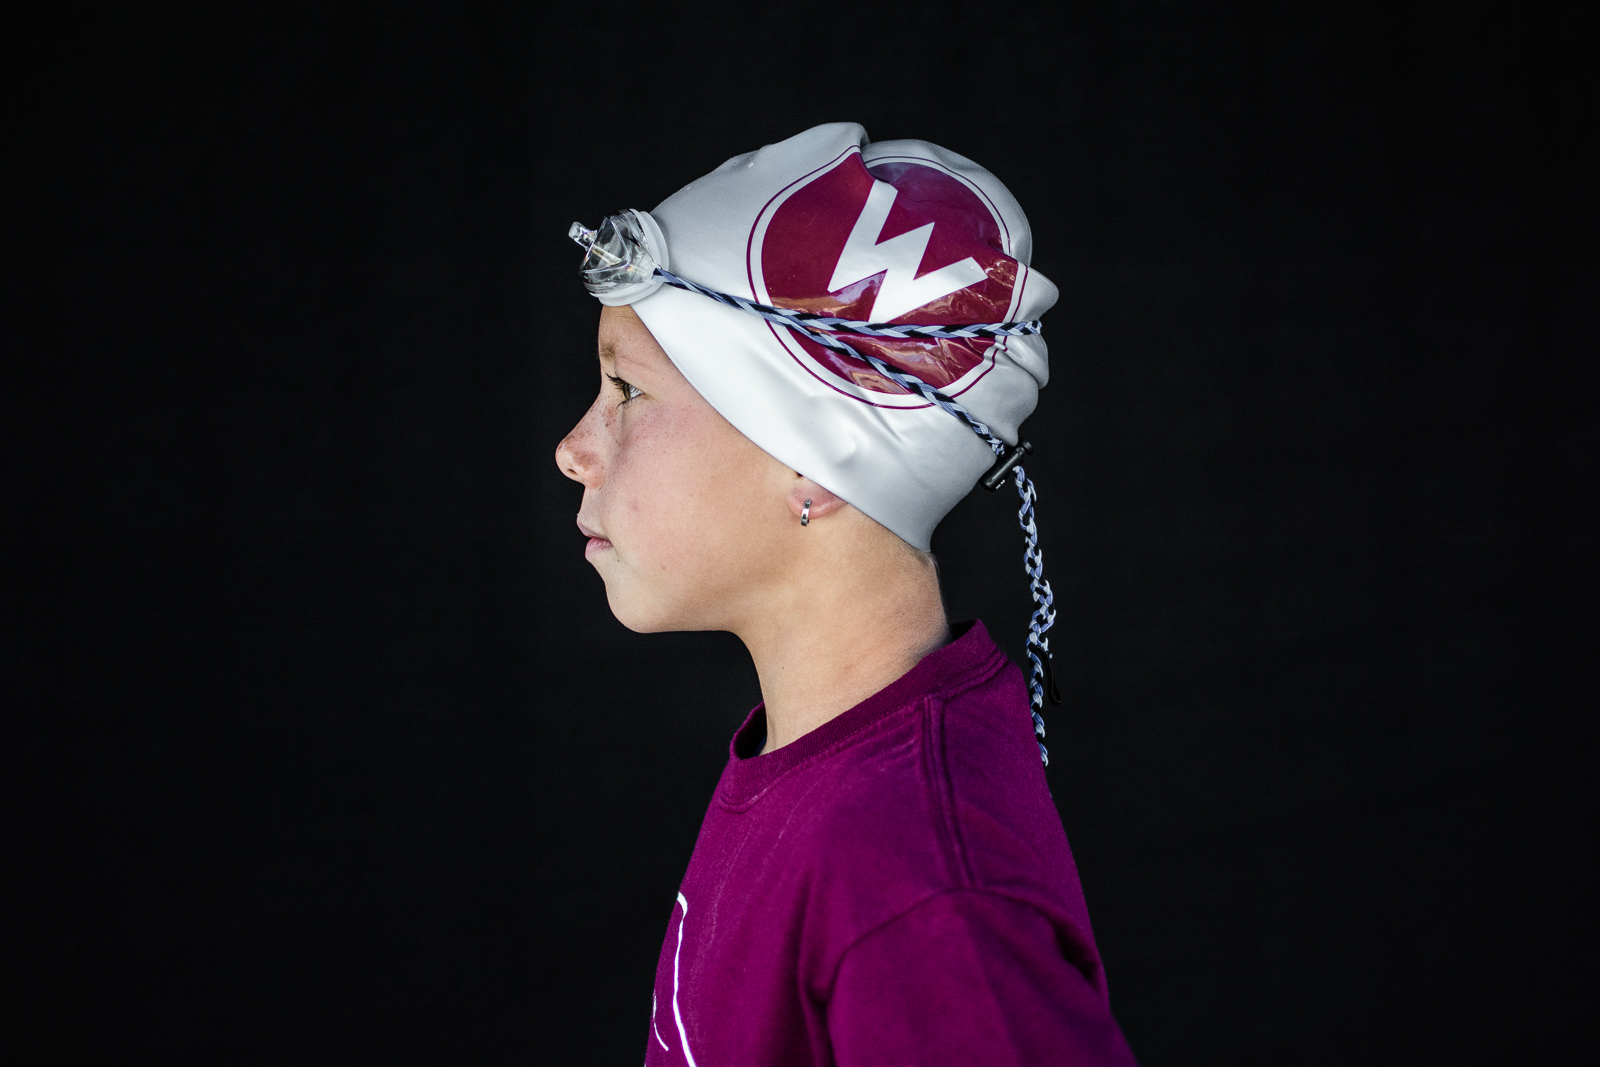 profile of girl swimmer with goggles and swim cap